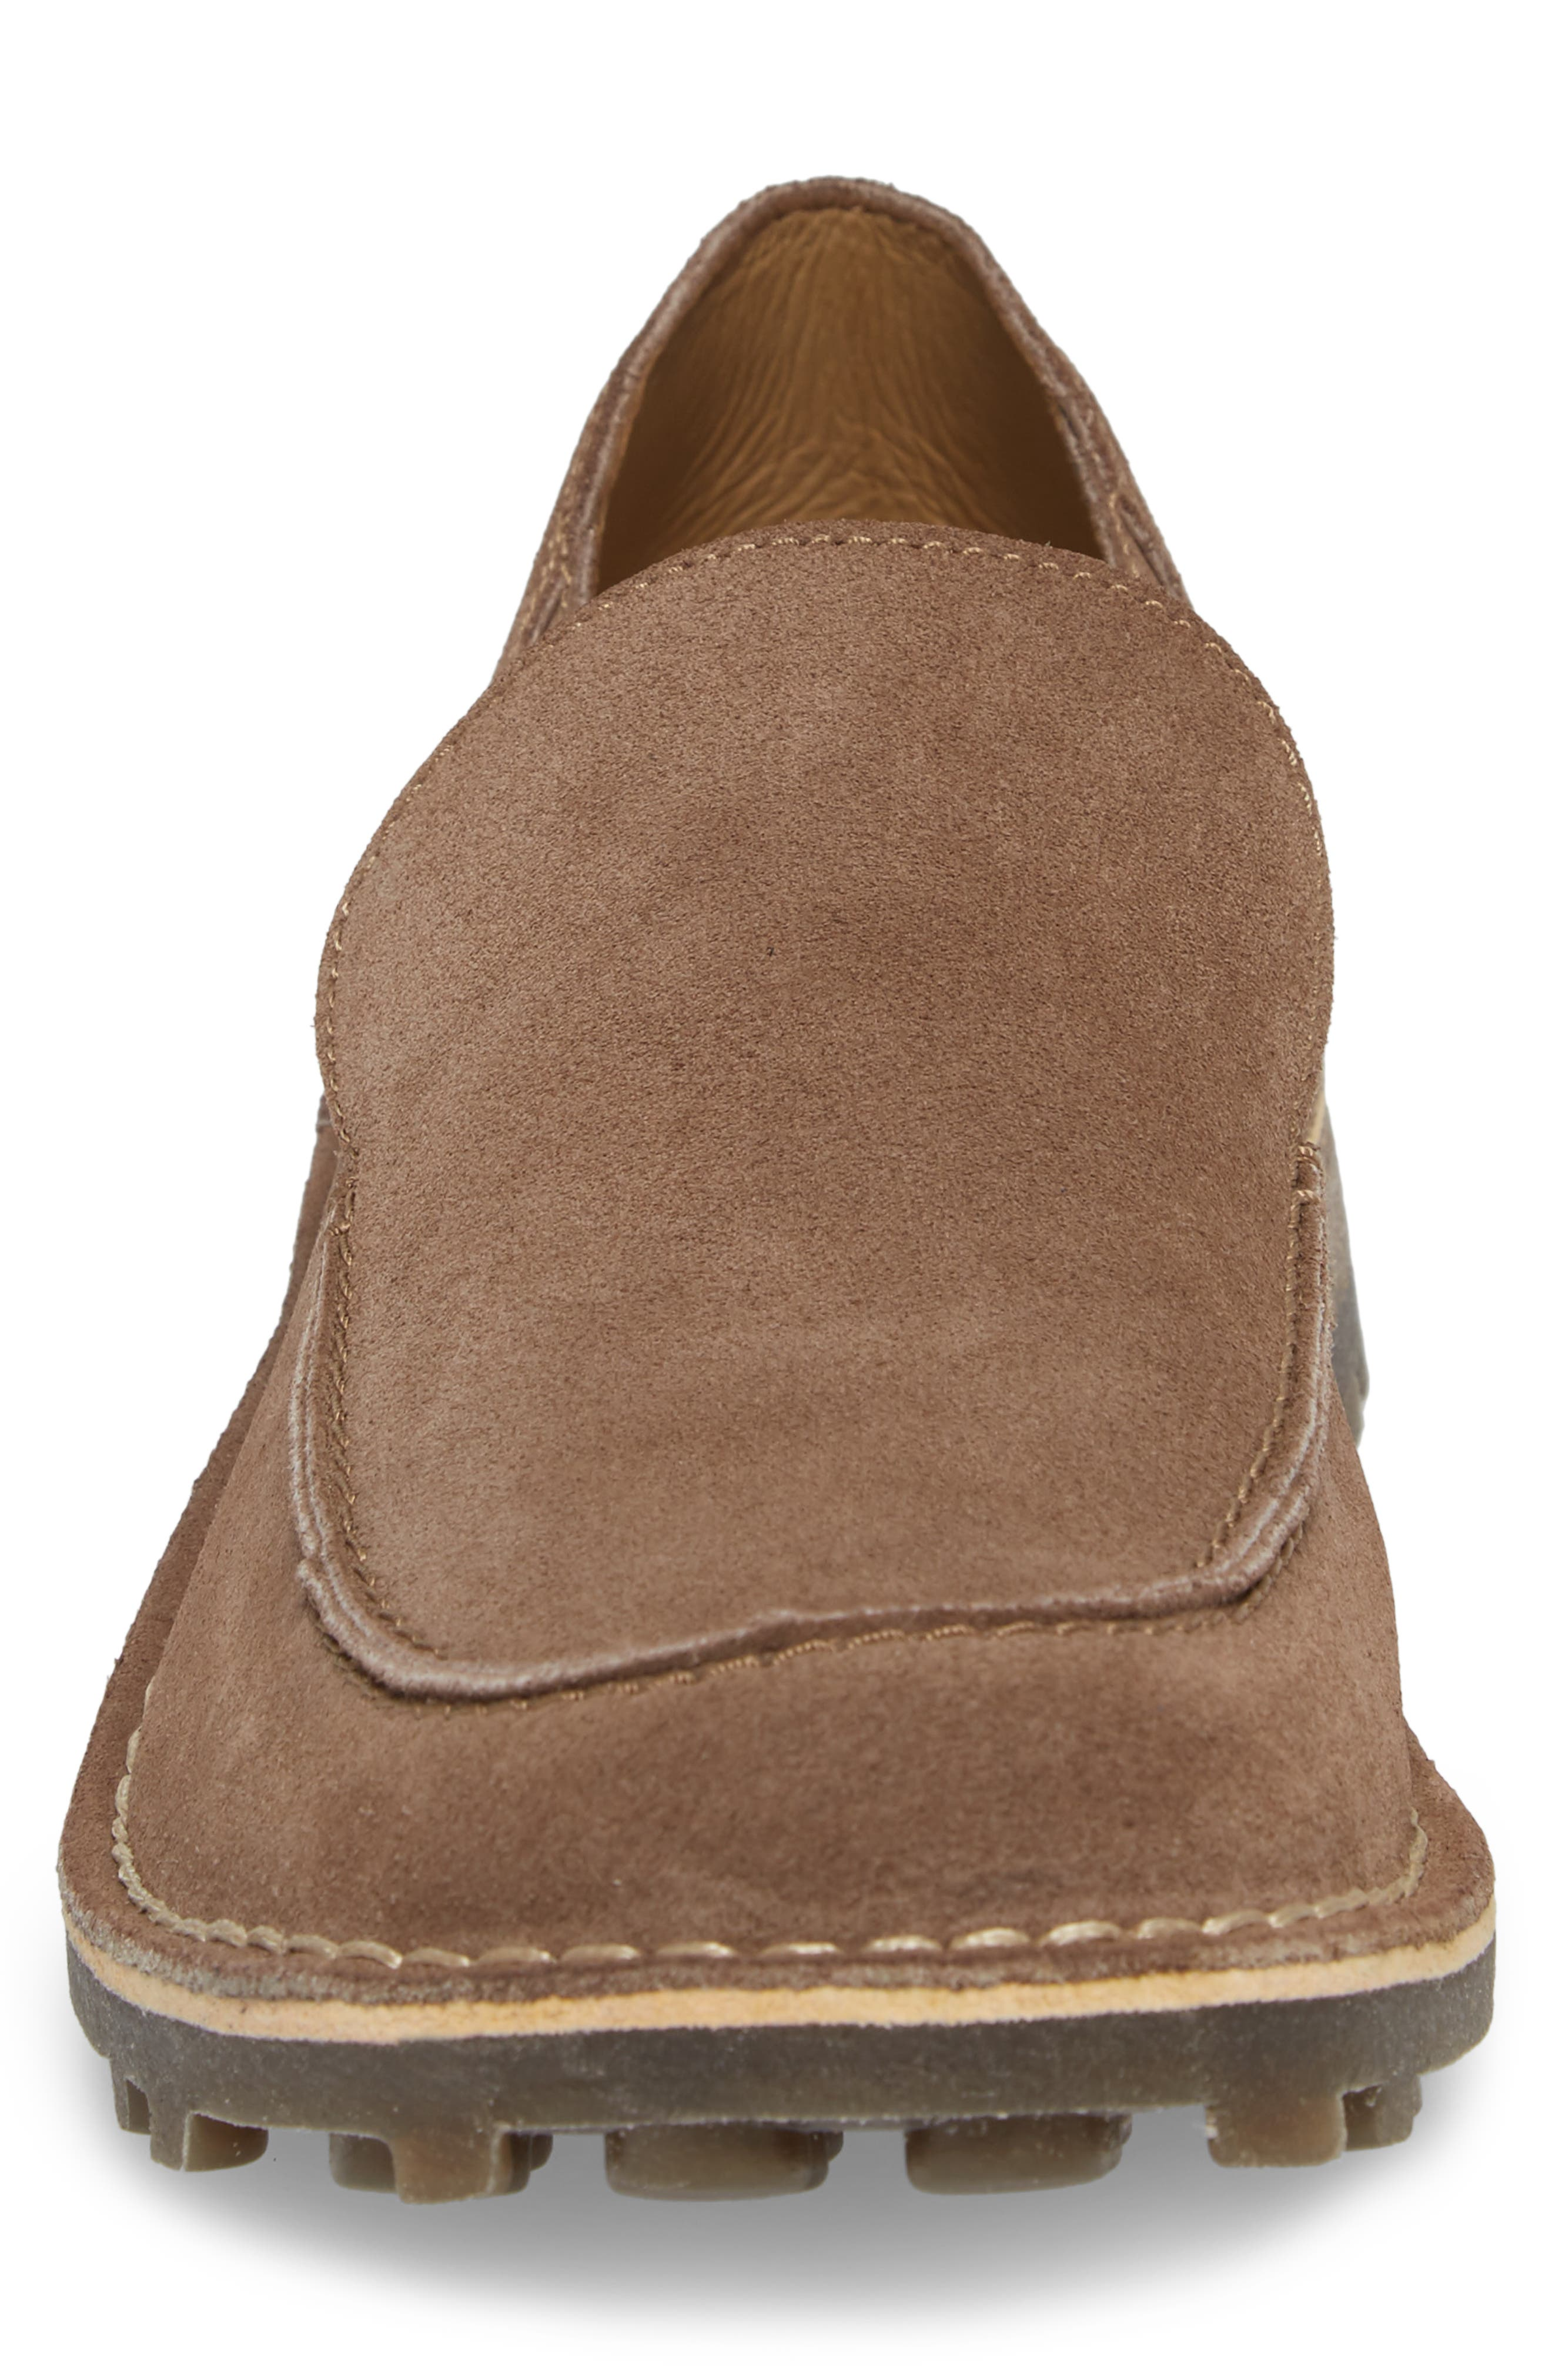 Meve Moc Toe Loafer,                             Alternate thumbnail 4, color,                             Taupe Suede